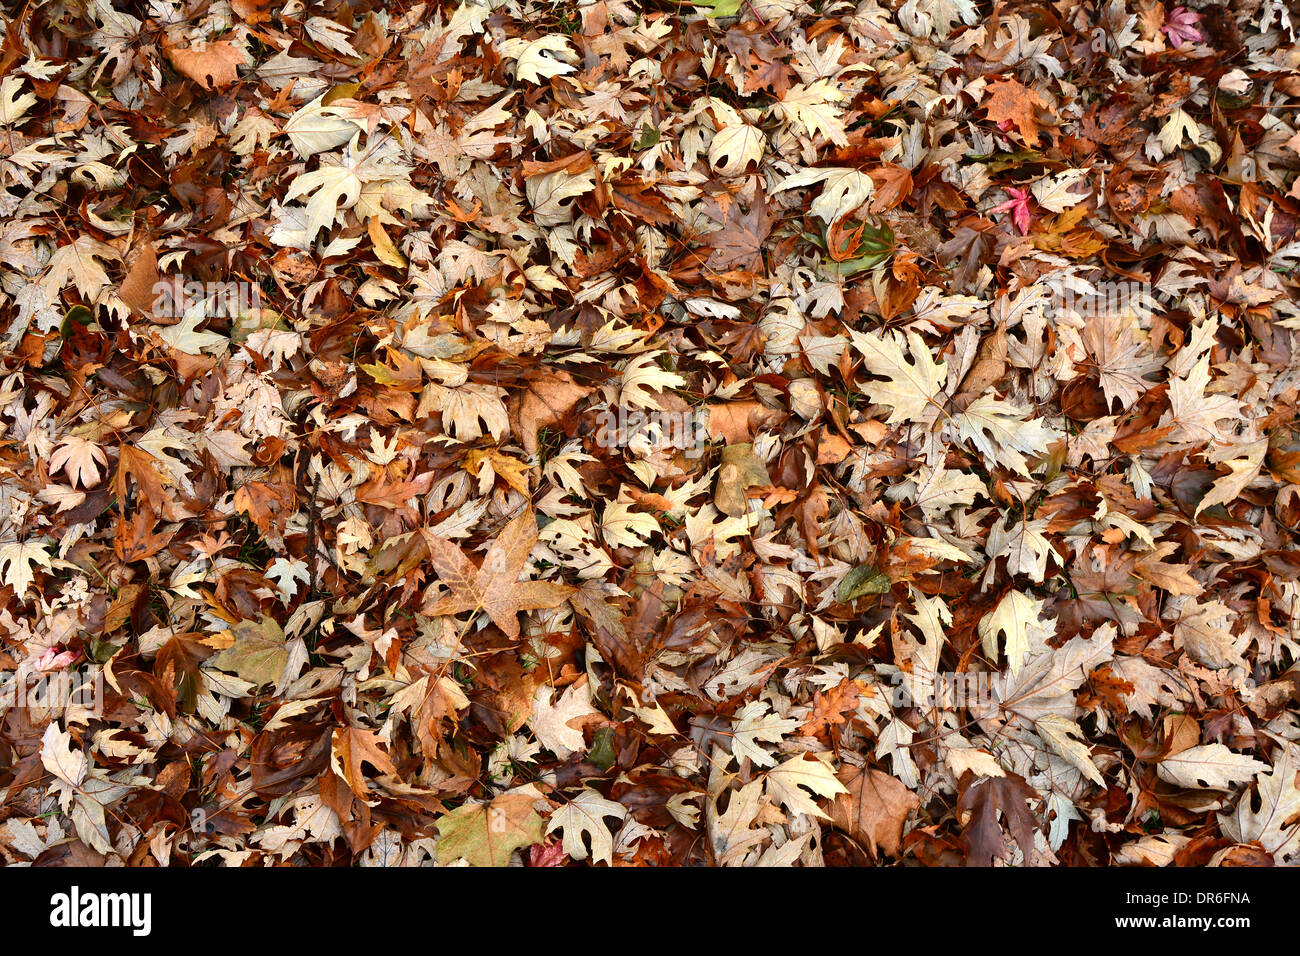 carpet of fallen autumn leaves covers the ground - Stock Image